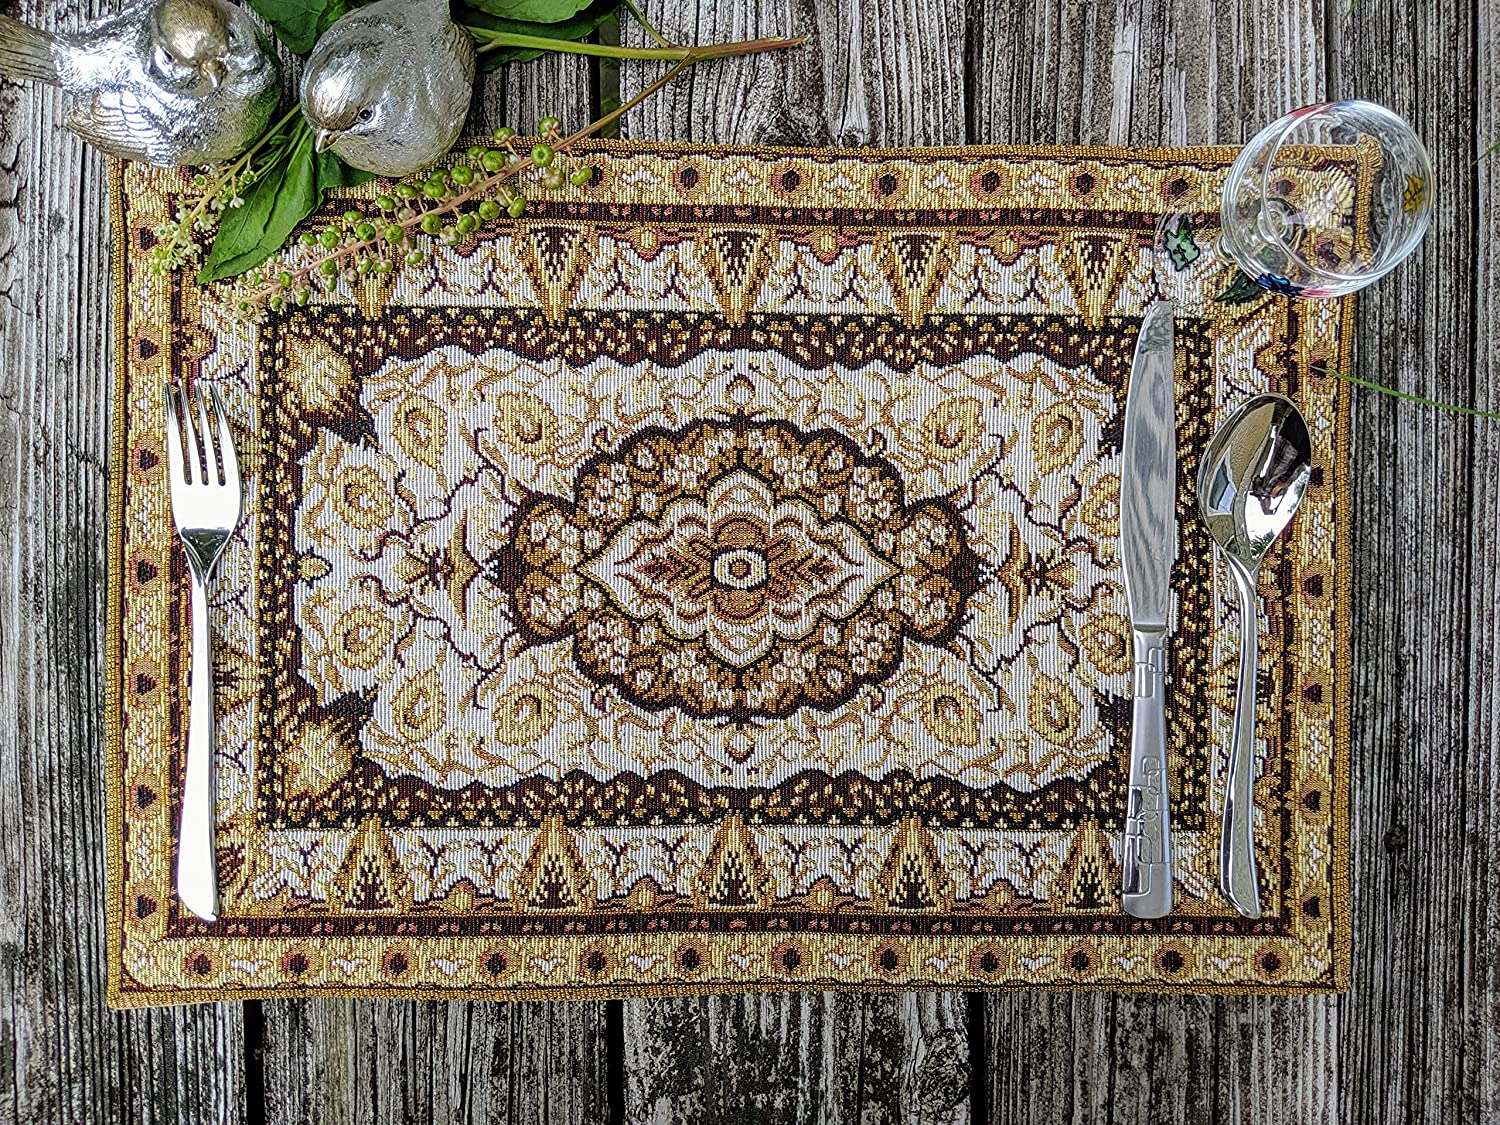 "DaDa Bedding Persian Rug Placemats - Set of 4 Tapestry Intricate Elegant Royal Golden Opulence - Floral Damask Decorative Cotton Linen Woven Dining Table Mats - 13"" x 19"" (18119)"